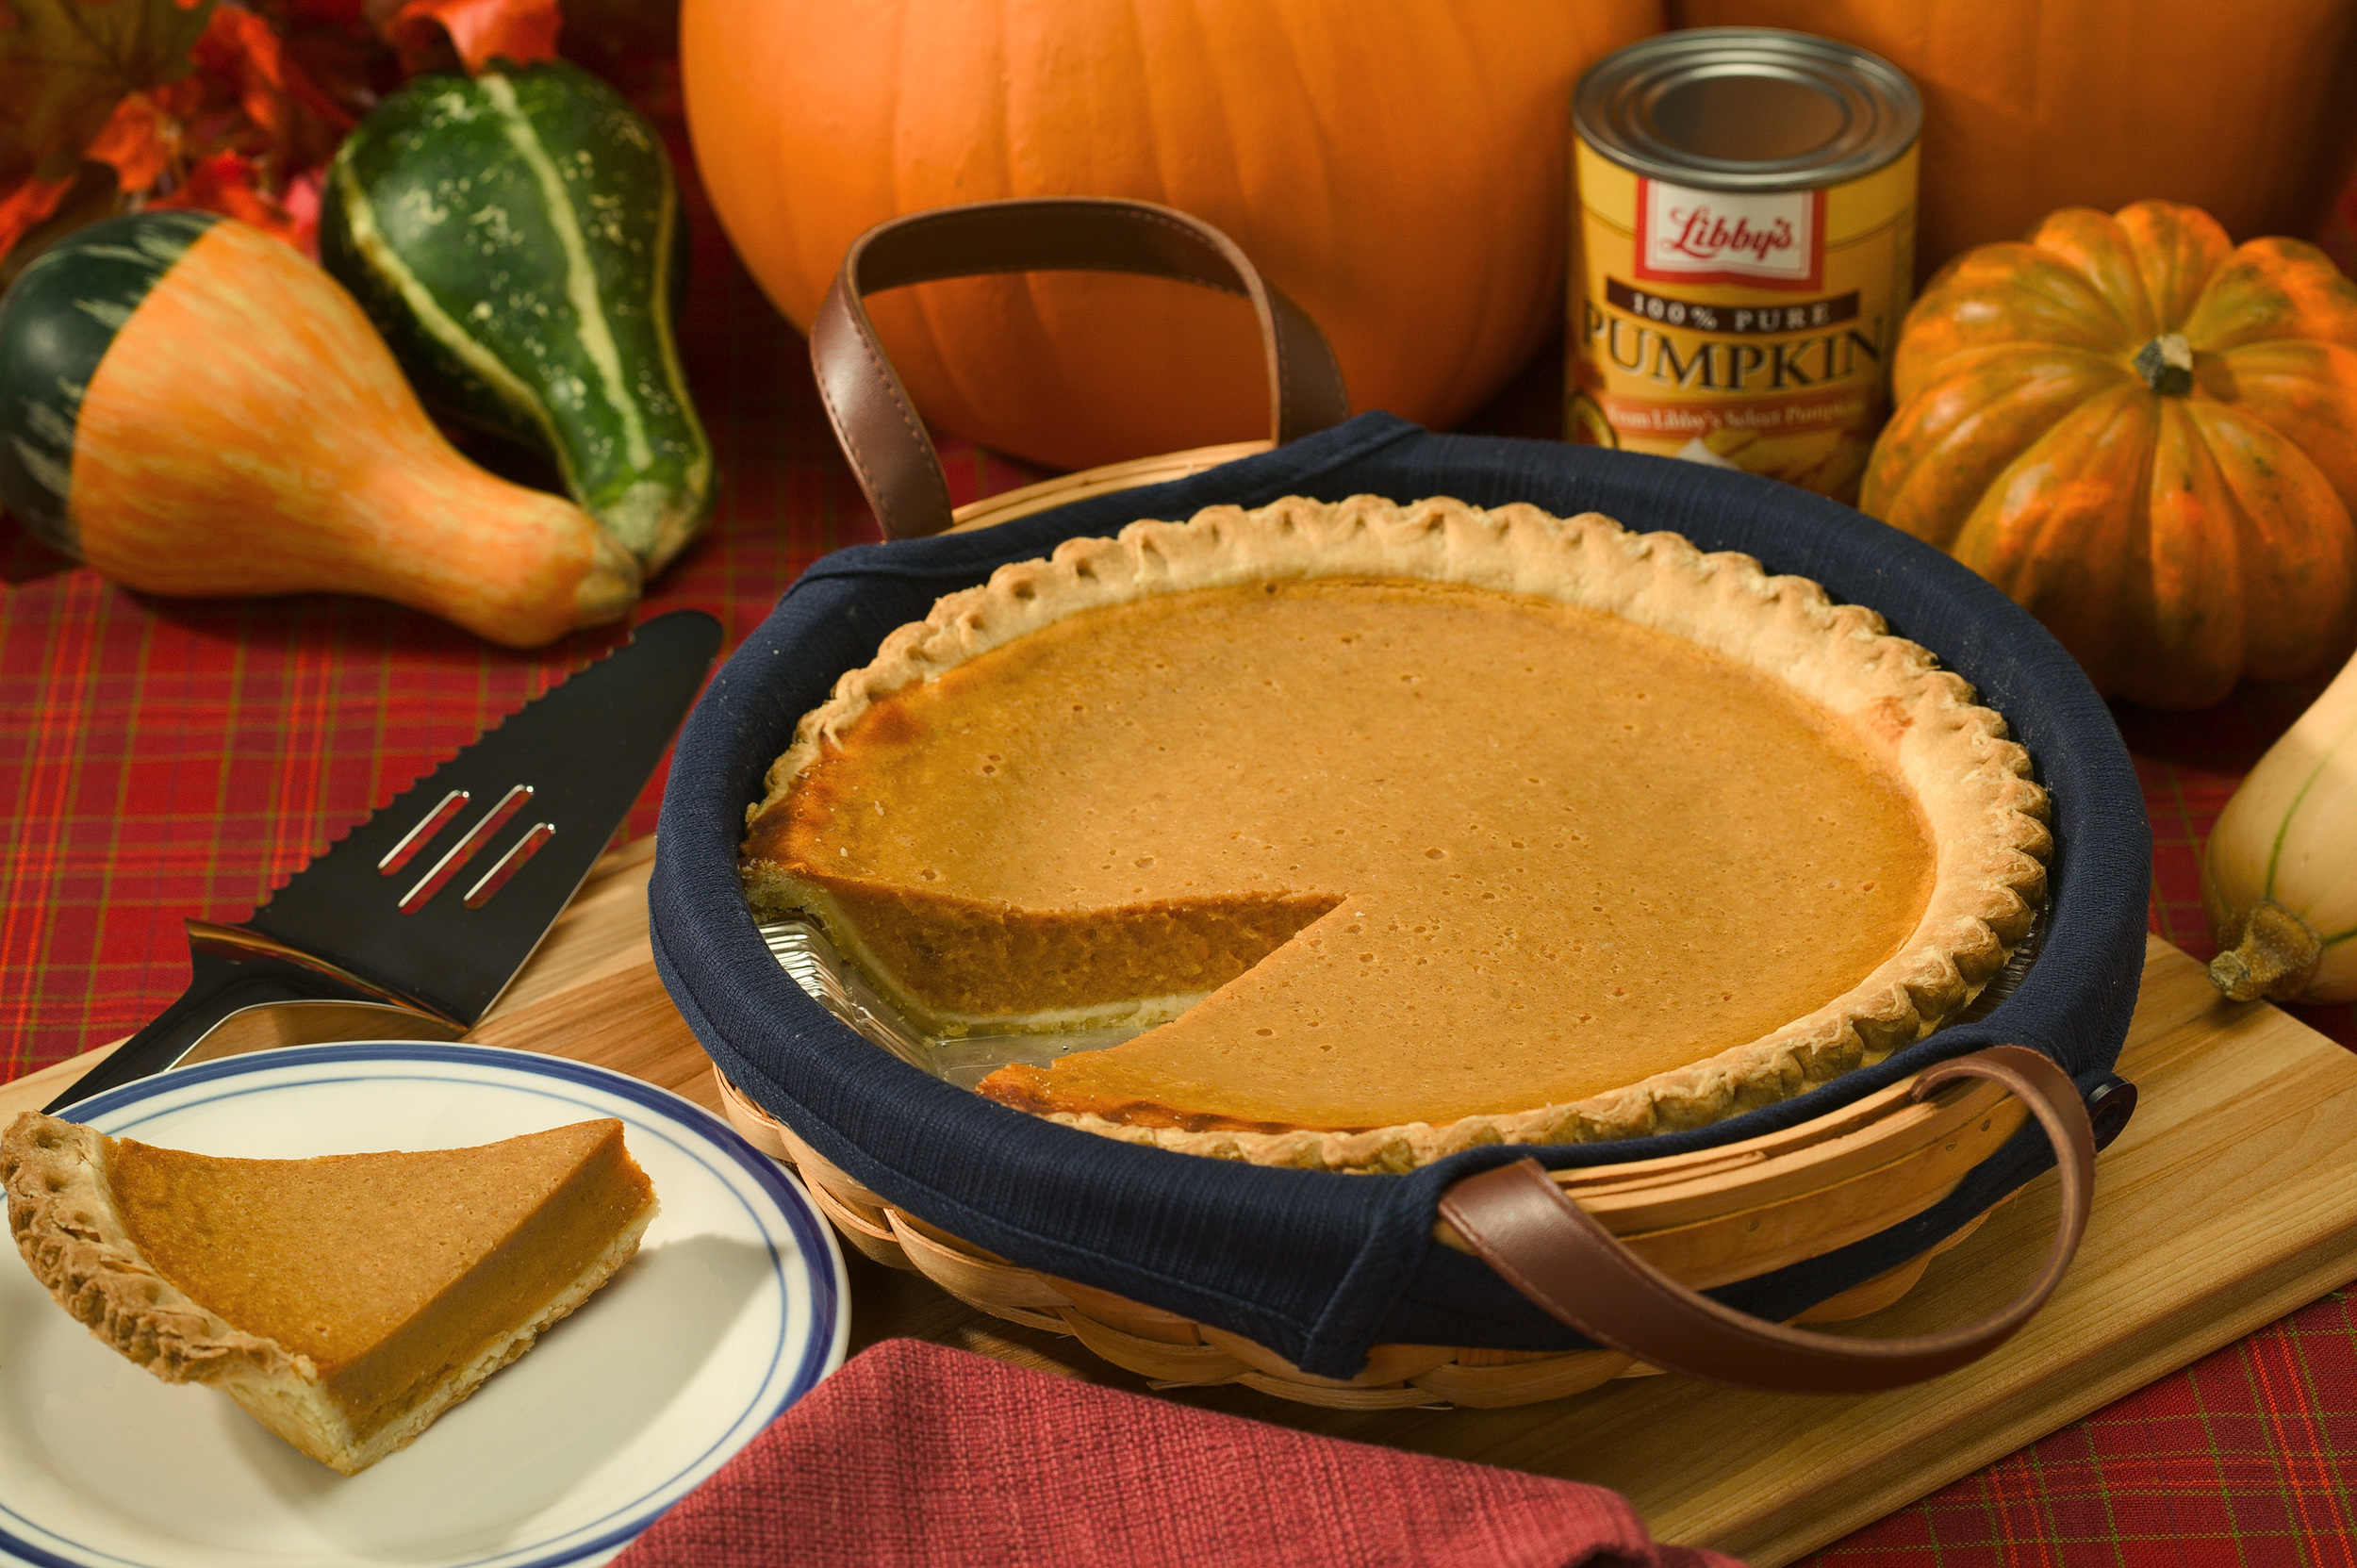 We hope that your pumpkin pie is delicious, no matter what variety of cucurbits end up in it!